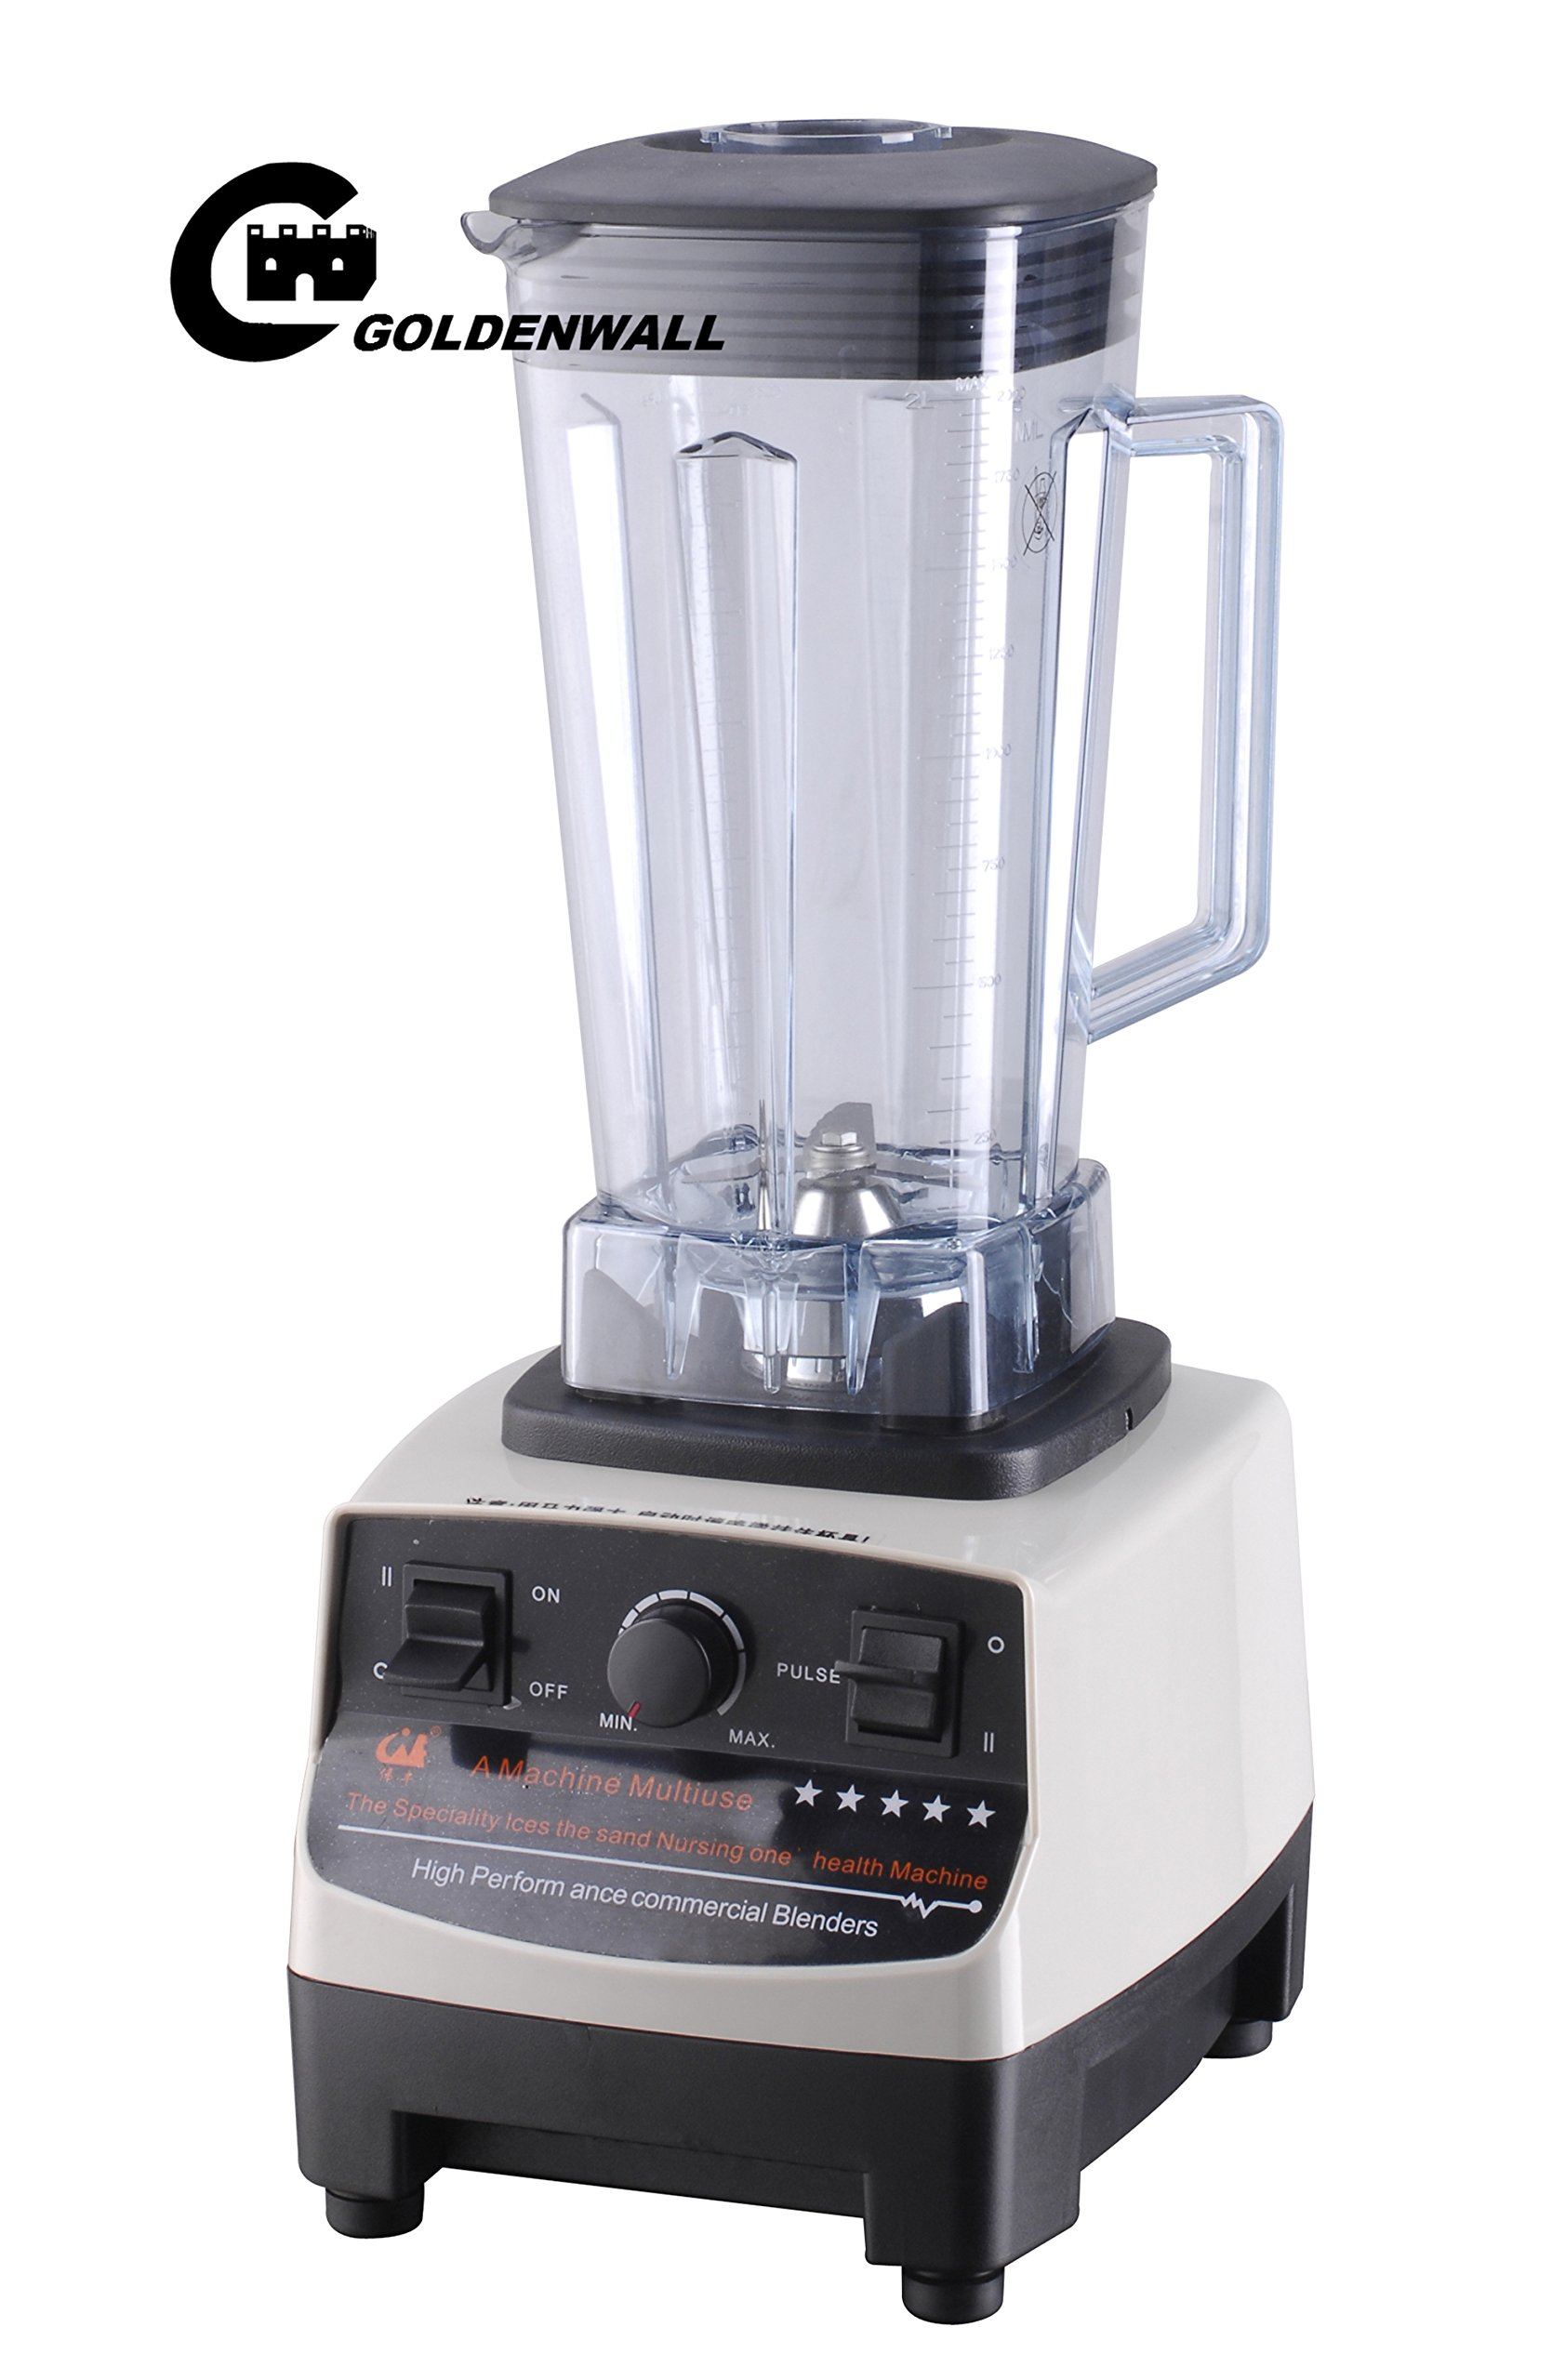 2L 12000W Commercial professional power blender vegetable / fruit squeezers & Reamers Sand ice machine / Soymilk Juicer maker juice extractor for home or milk tea shop 25000R/min